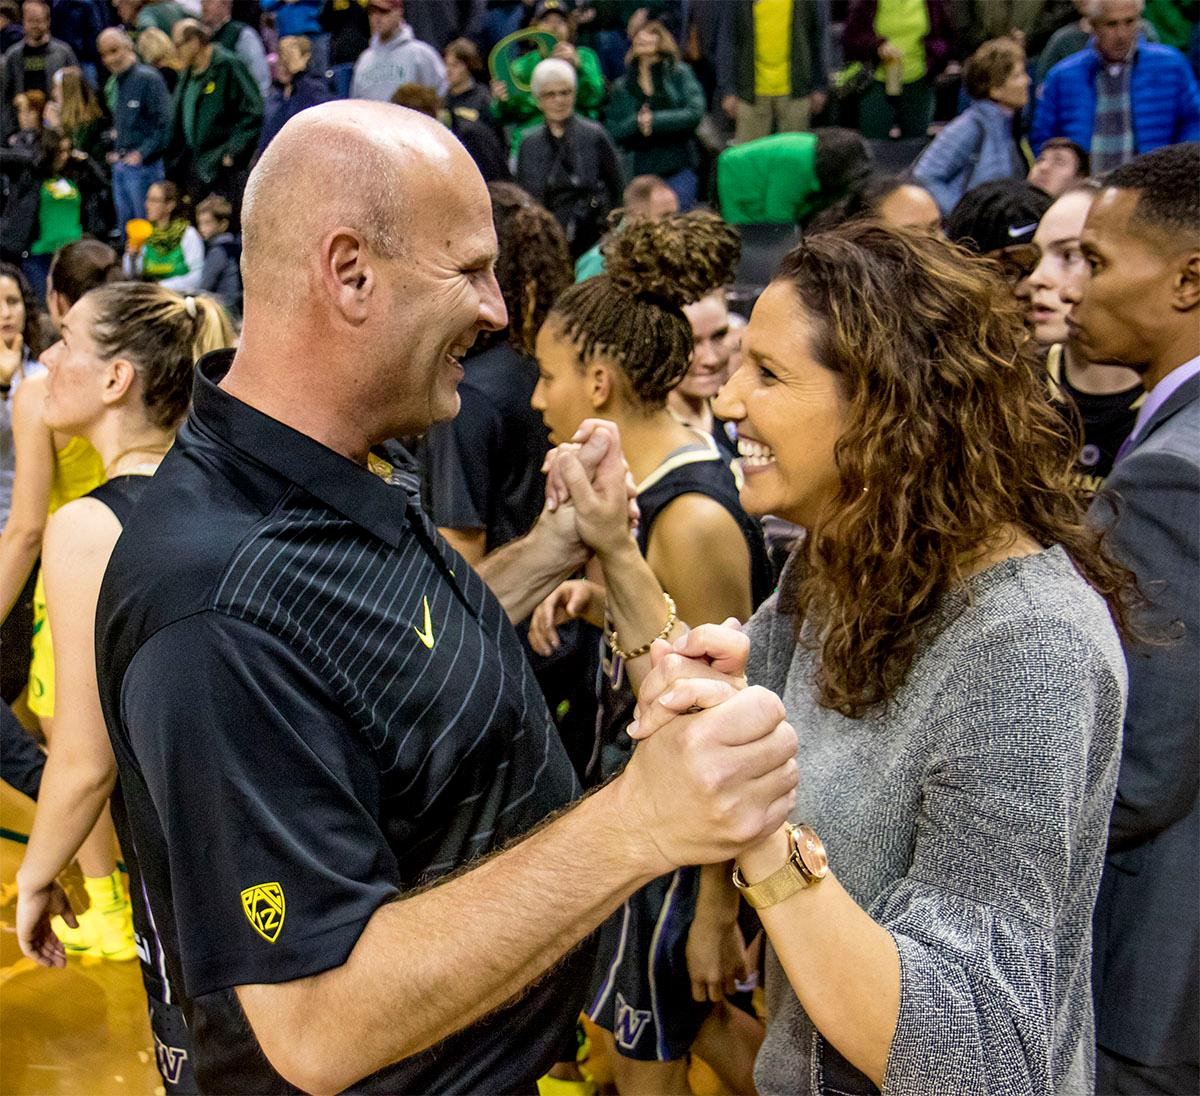 The Ducks Head Coach Kelly Graves is congratulated by the Huskies coach Jody Wynn on his 500th career win. The Oregon Ducks defeated the Washington Huskies 94-83 on Sunday at Matthew Knight Arena. Sabrina Ionescu also set the new NCAA all time record of 8 triple doubles in just 48 games. The previous record was 7 triple doubles in 124 games, held by Susie McConnell at Penn State. The Ducks will next face off against USC on Friday January 5th in Los Angeles. Photo by Rhianna Gelhart, Oregon News Lab